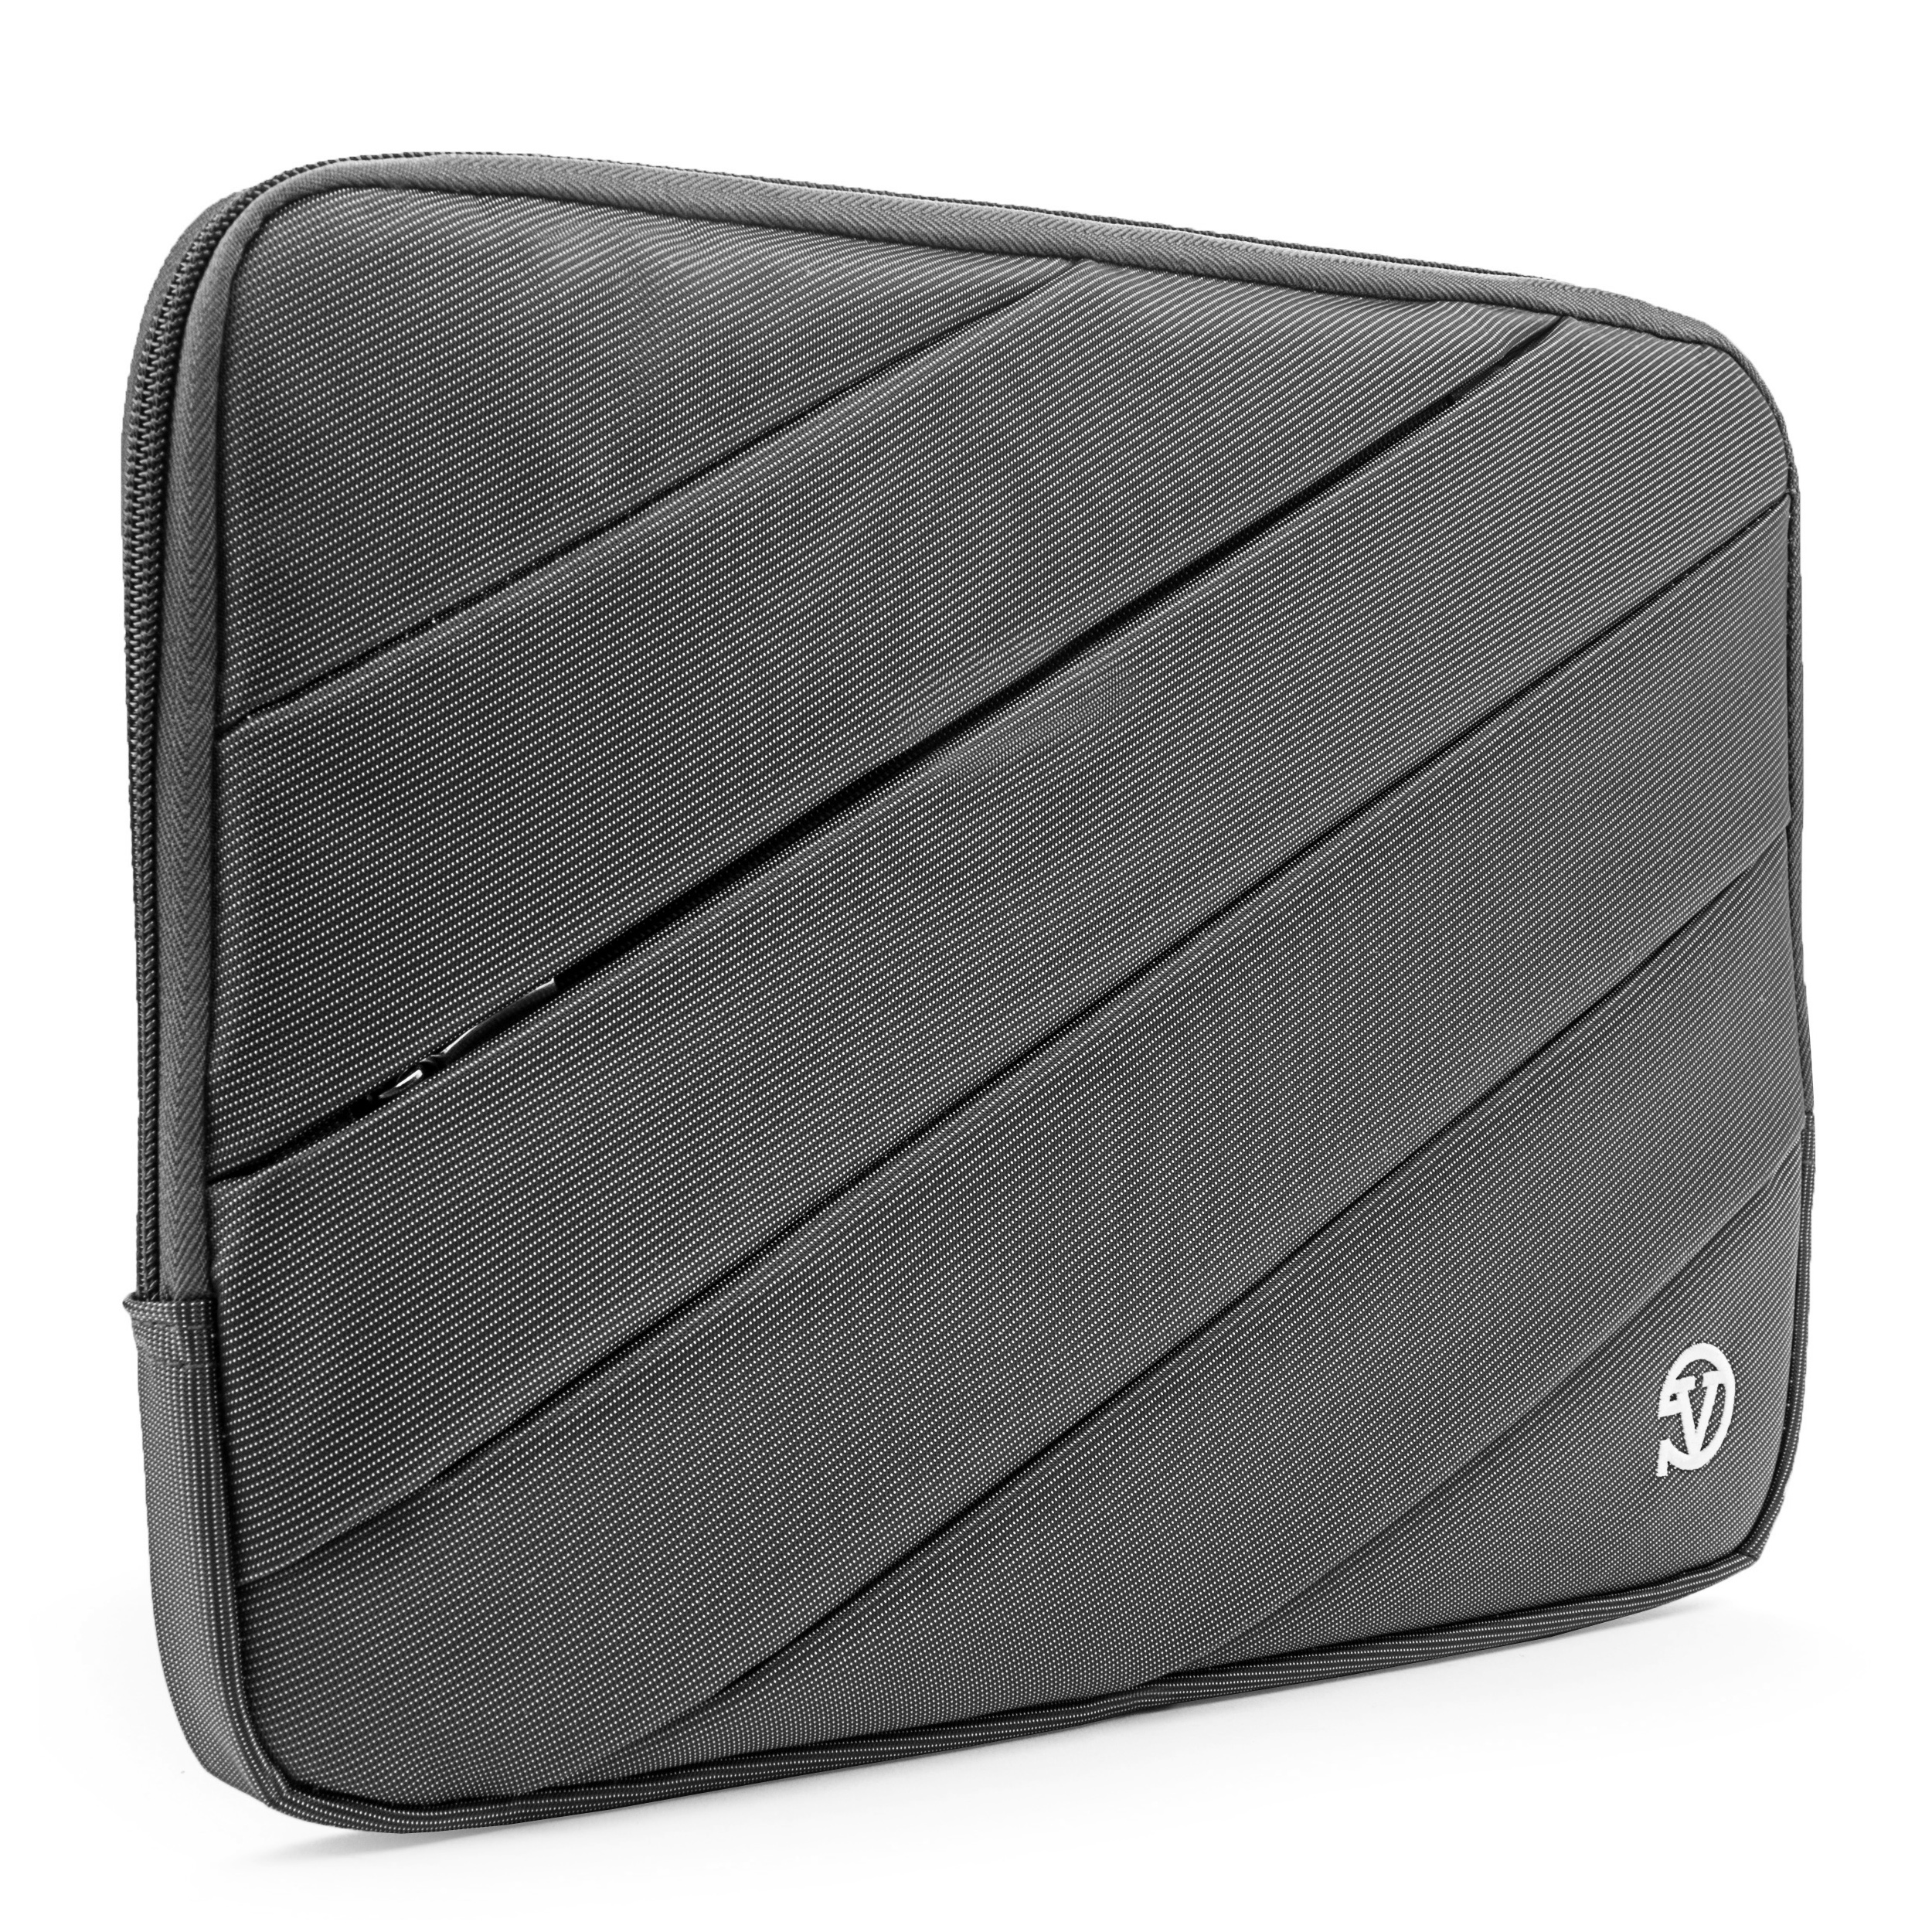 VANGODDY Jam Padded Carrying Sleeve fits Tablets / Laptops / Netbooks up to 11, 11.6, 12, 12.5 inches [Samsung, HP, Asus, Acer, Apple, Toshiba, Lenovo, etc.]